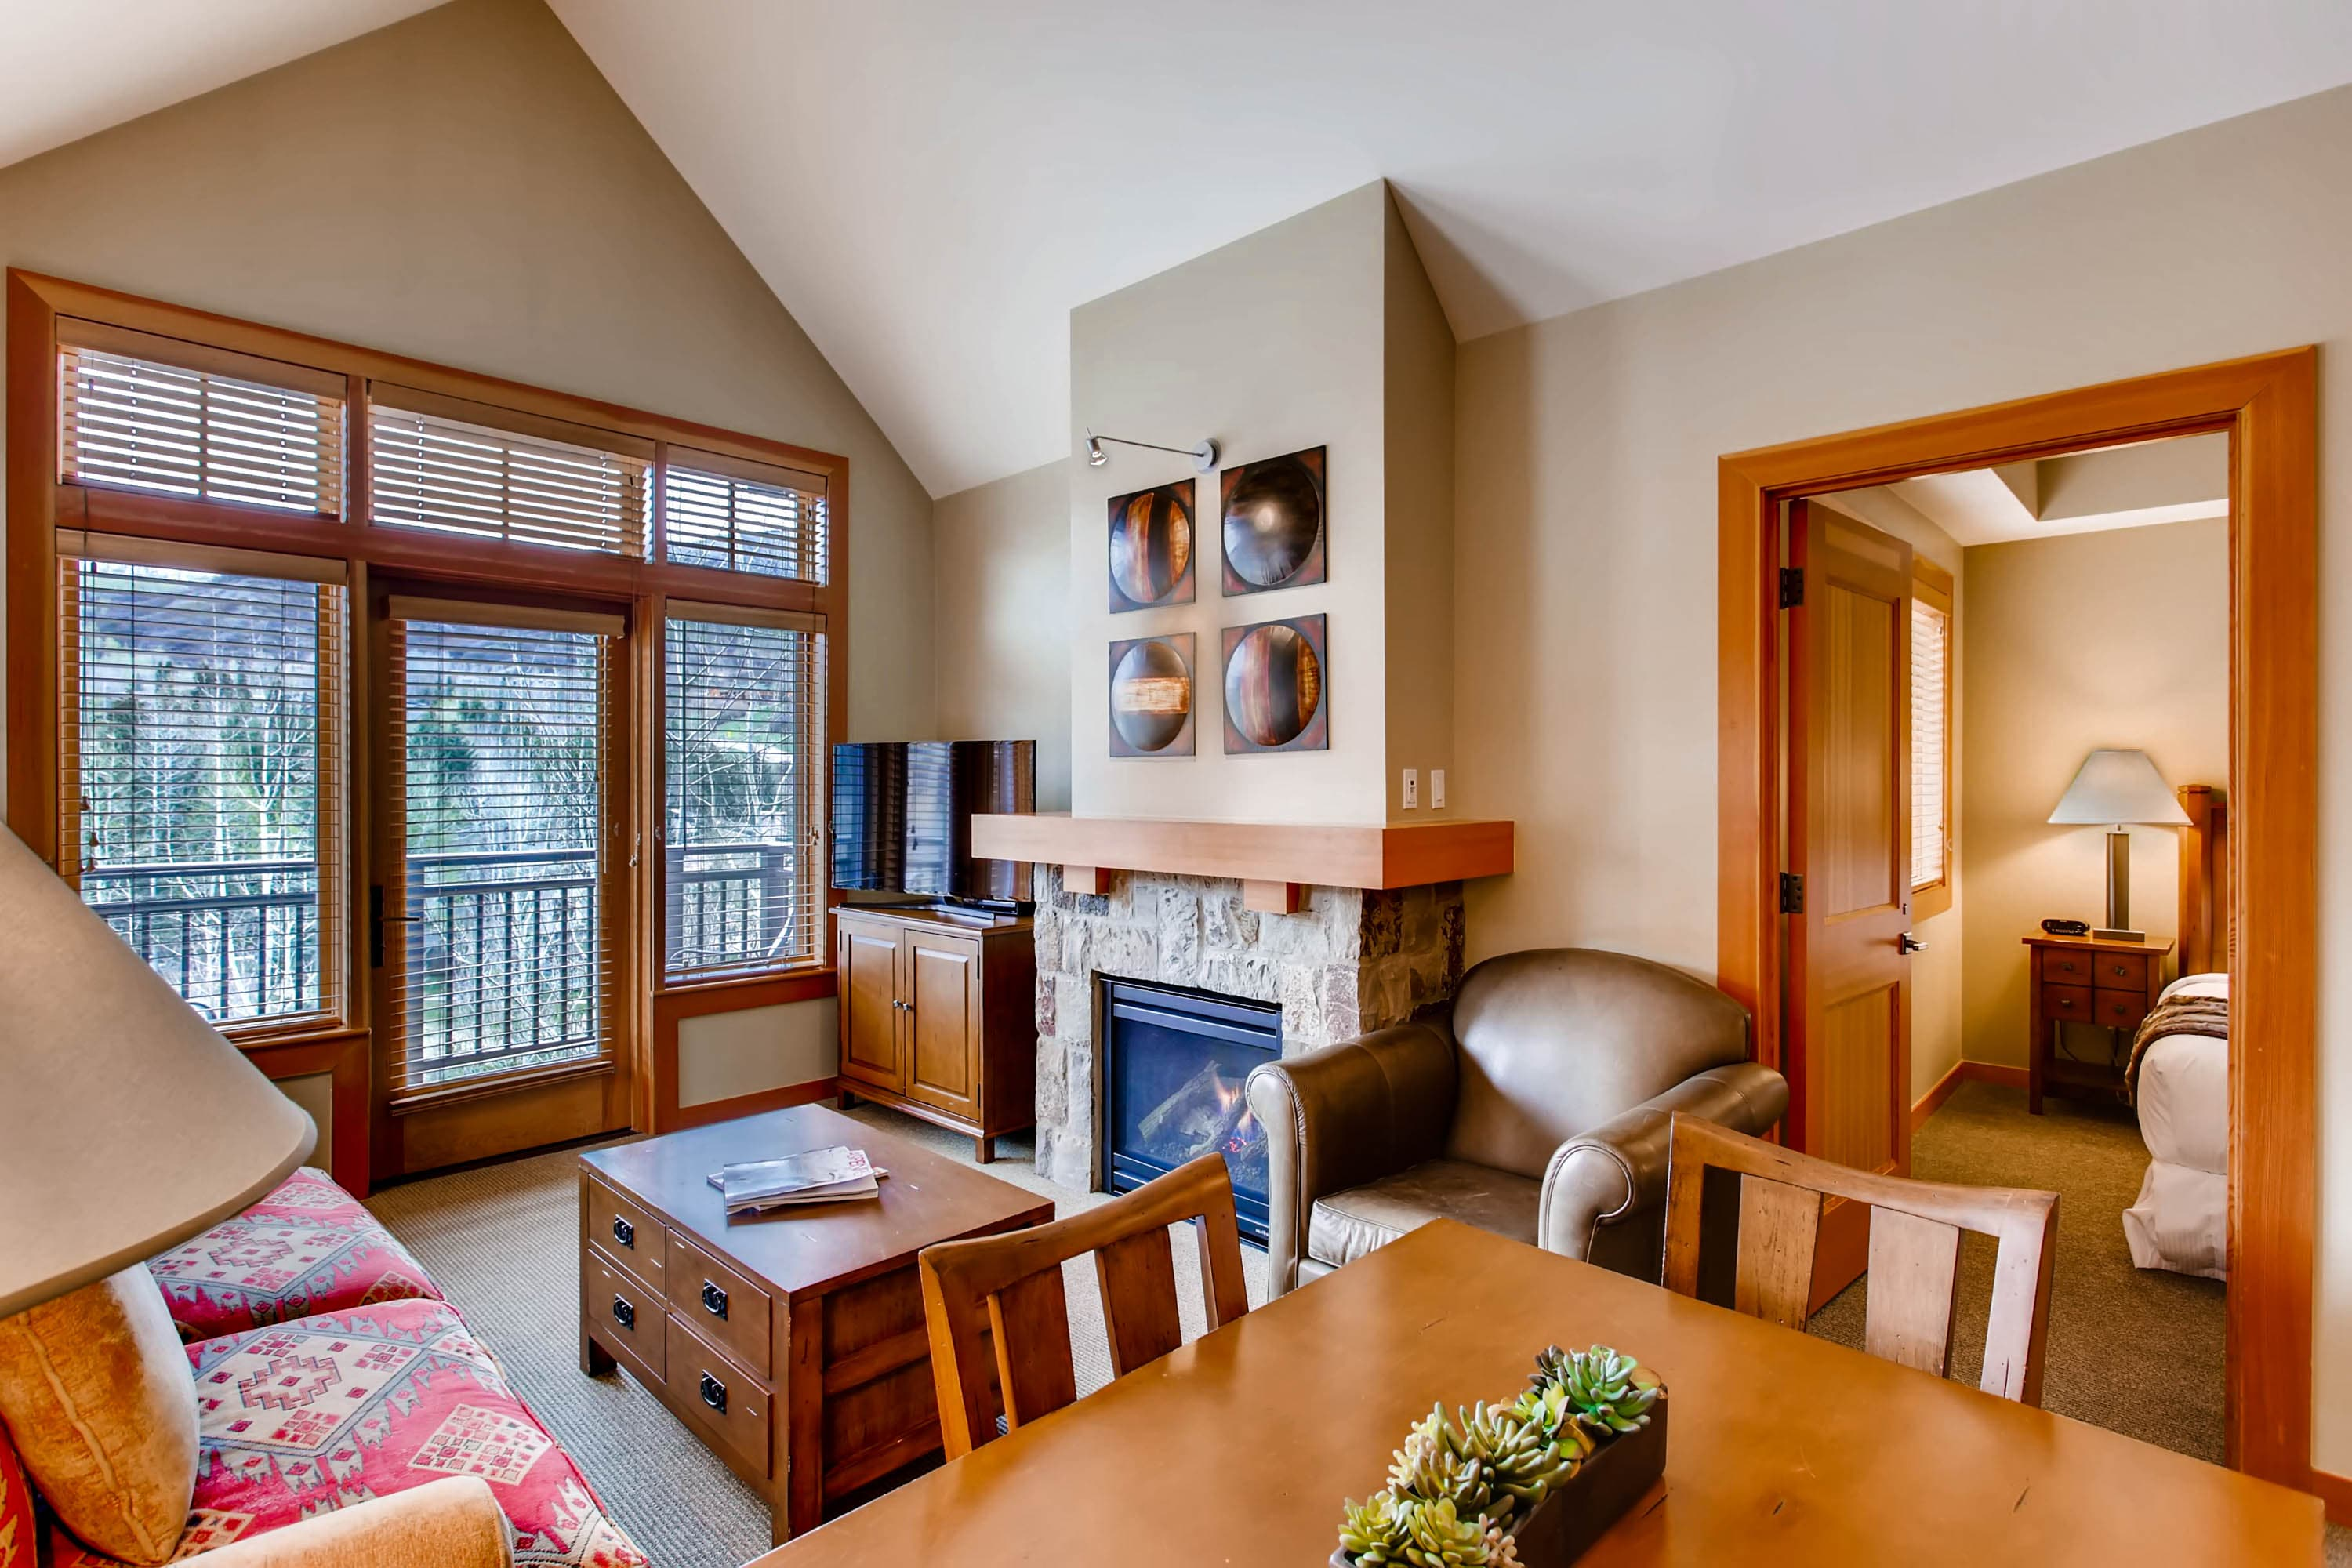 Property Image 1 - Comfortable mountain apartment with vaulted ceilings in Capitol Peak Lodge